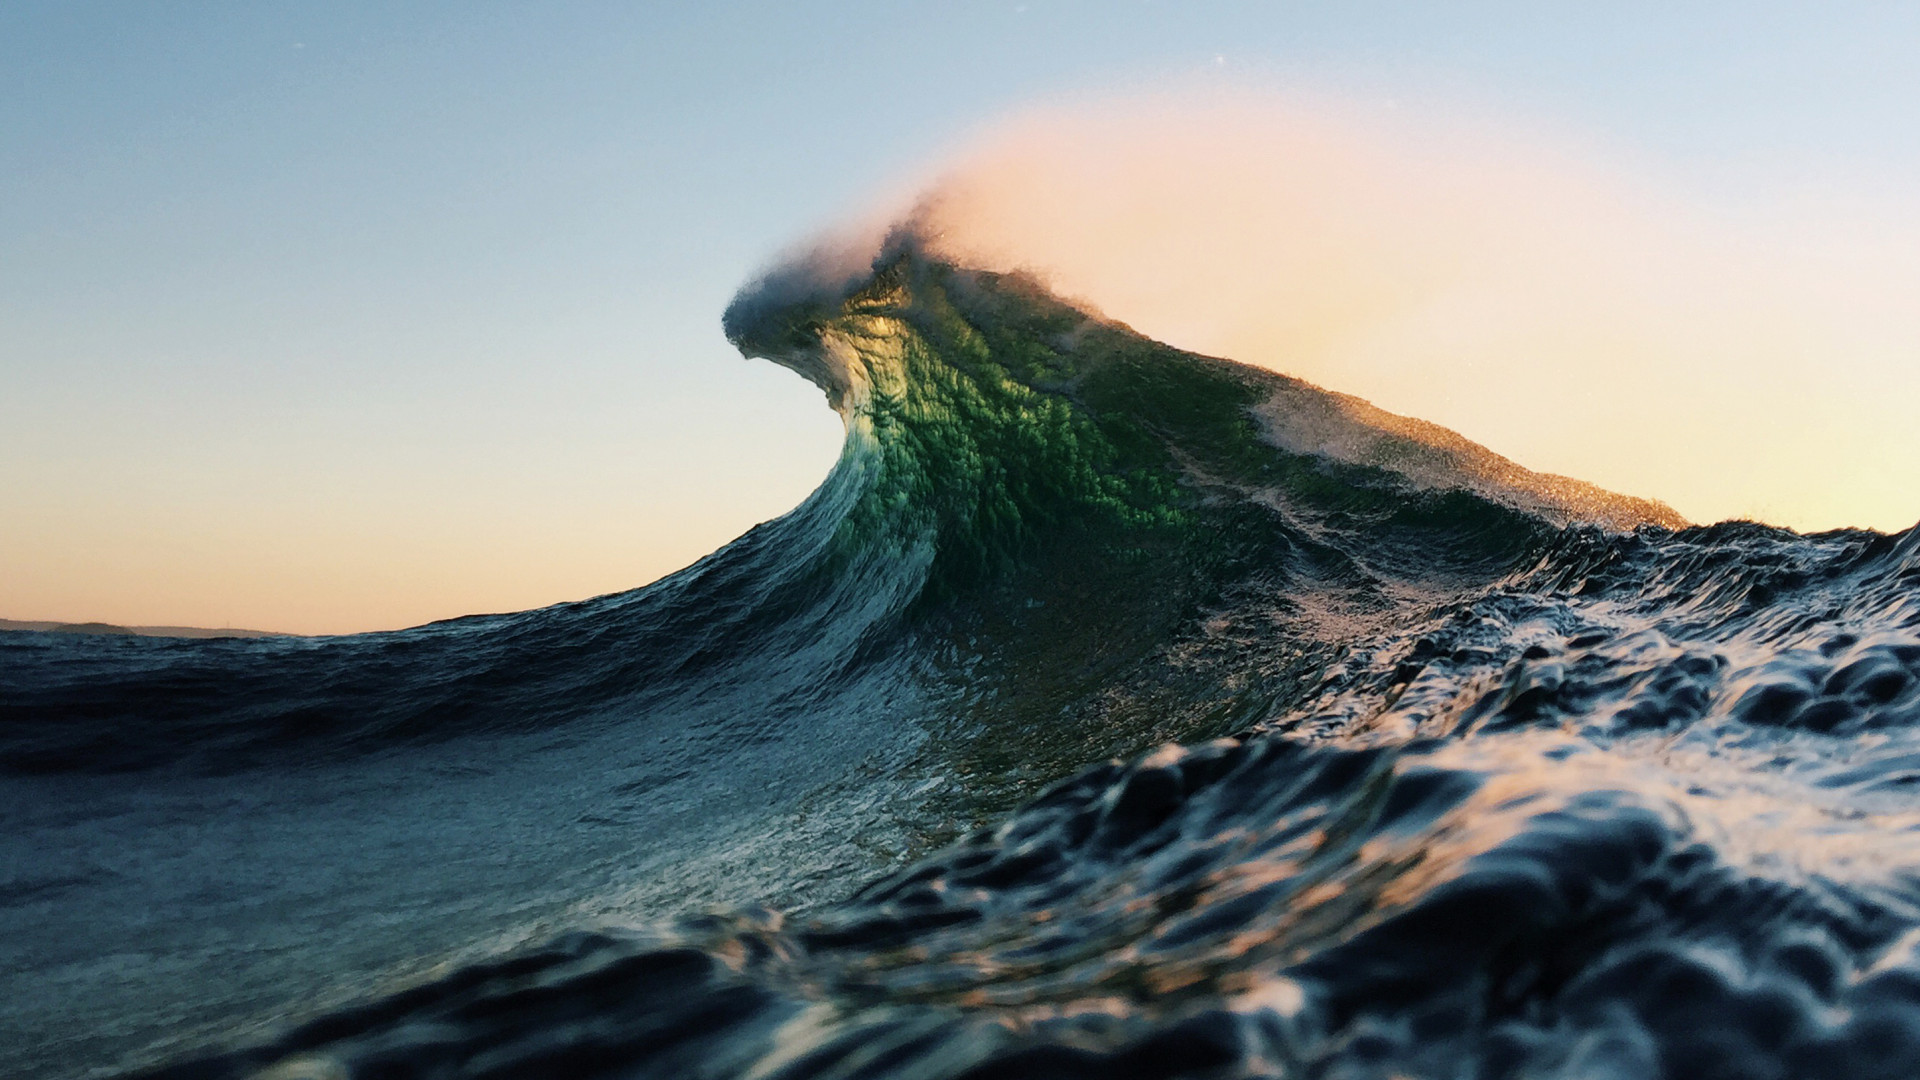 Light glowing through the top of an incoming wave